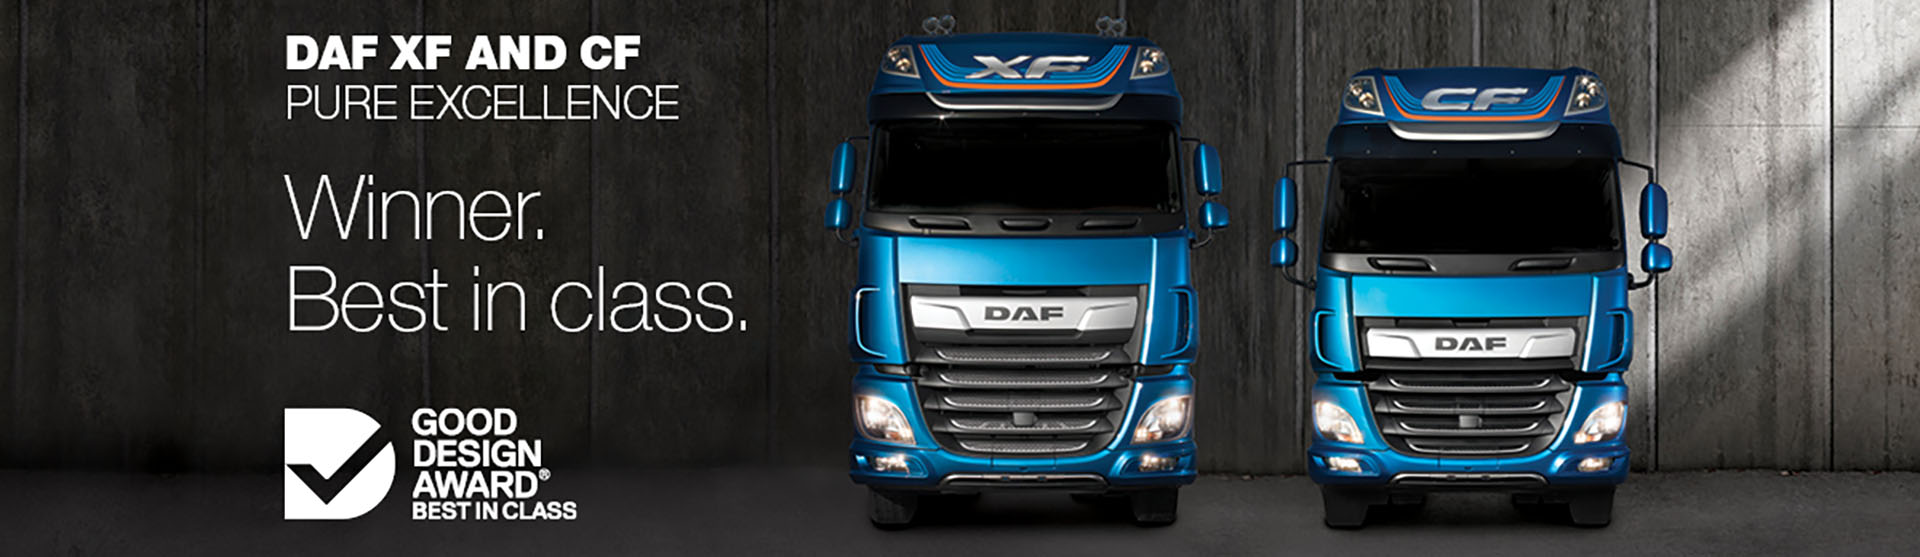 DAF Trucks Good Design Award